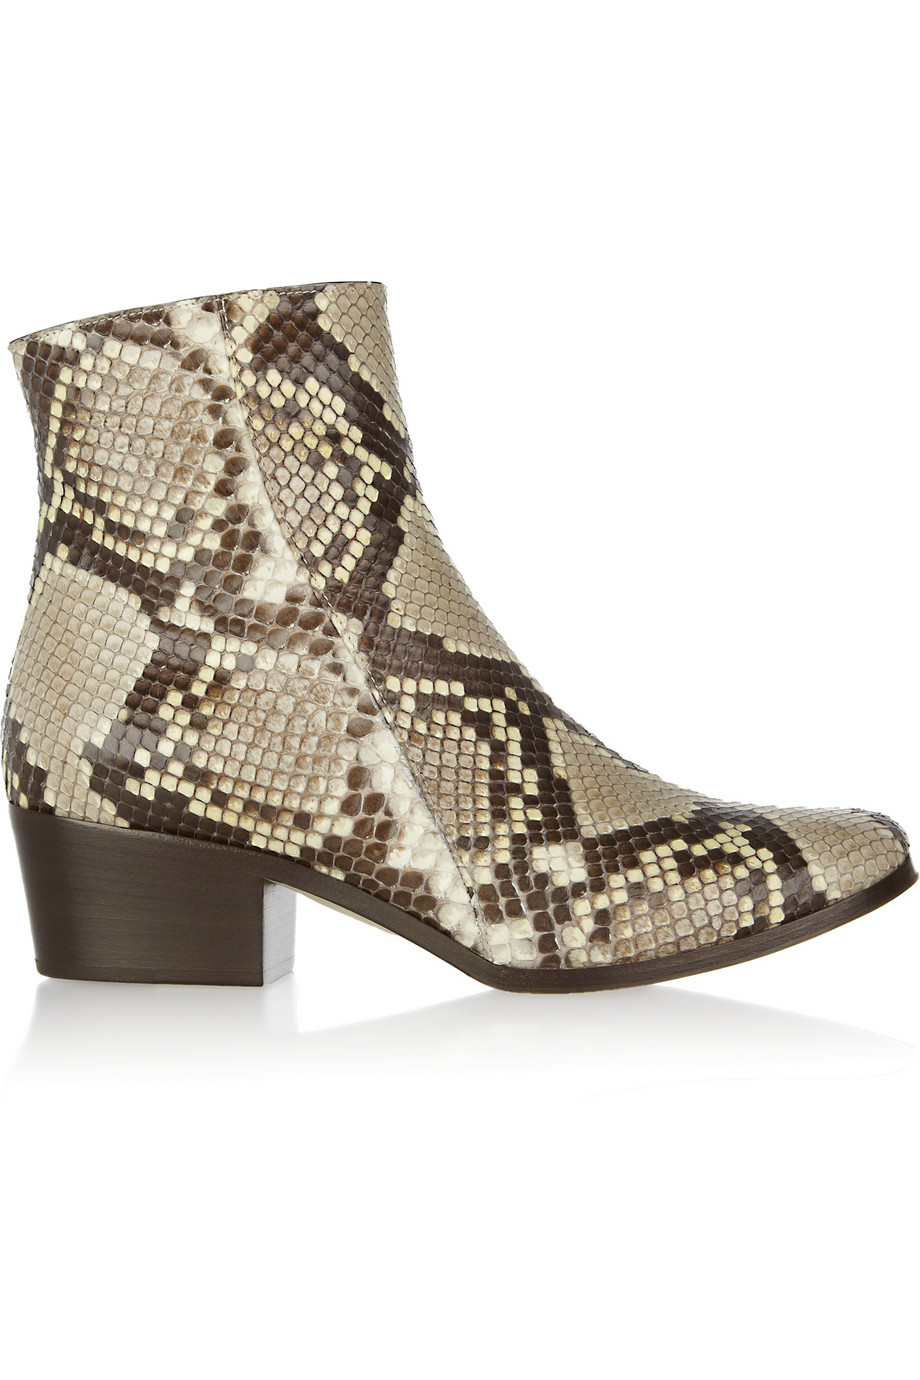 Jimmy Choo Python Pointed-Toe Ankle Boots really cheap online free shipping fashion Style buy cheap Inexpensive supply sale online excellent foHfi